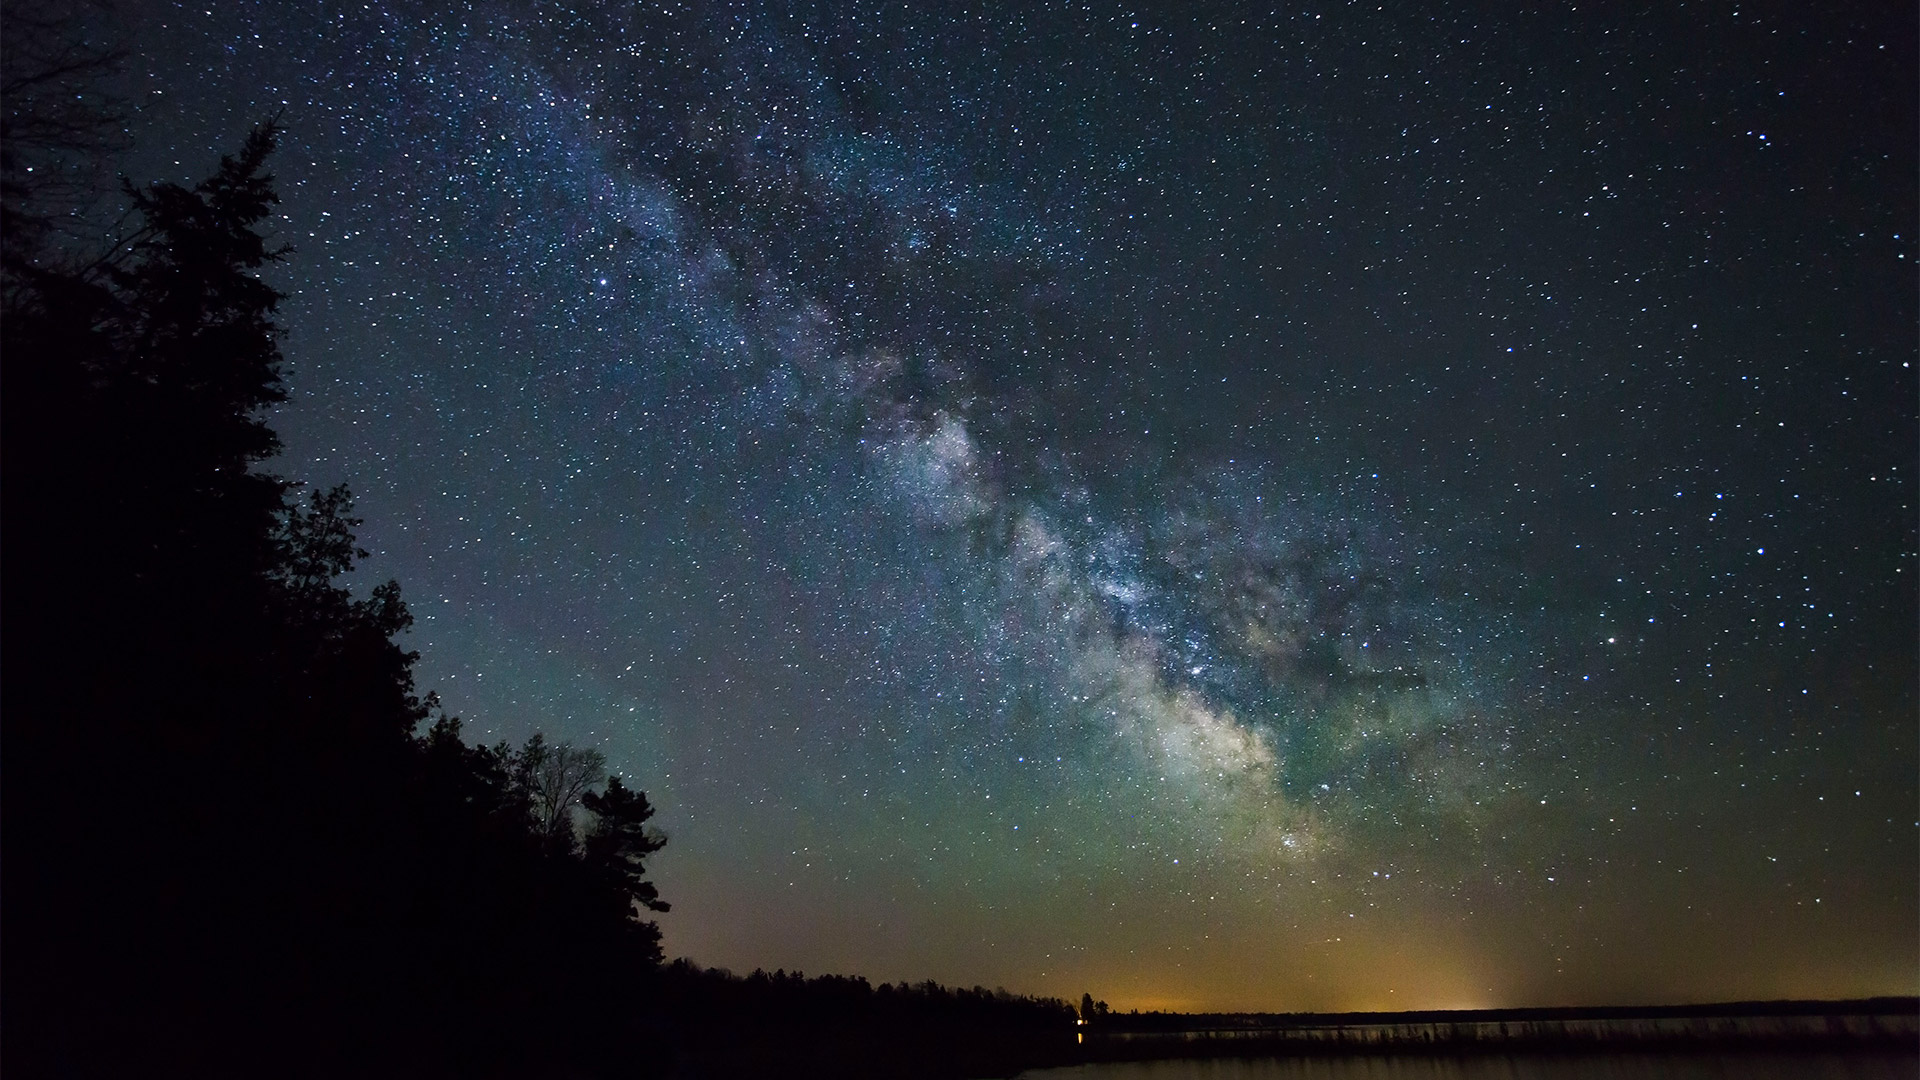 milky way fades into the distance